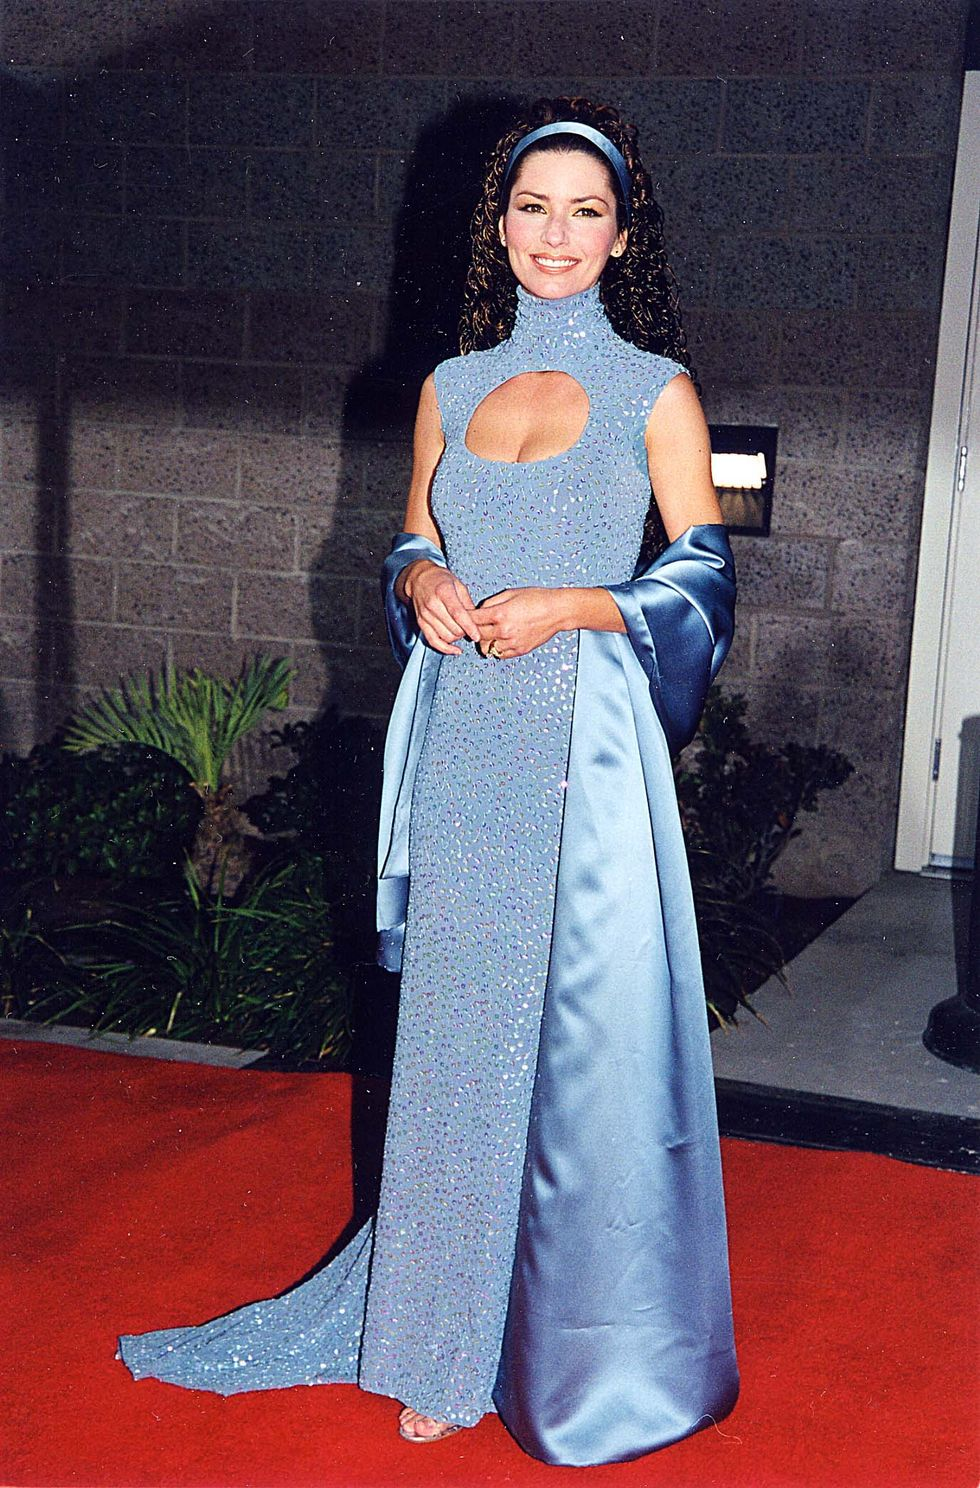 Shania Twain during Billboard Awards '98 at MGM Grand in Las Vegas, Nevada, United States. (Photo by Jeff Kravitz/FilmMagic, Inc)